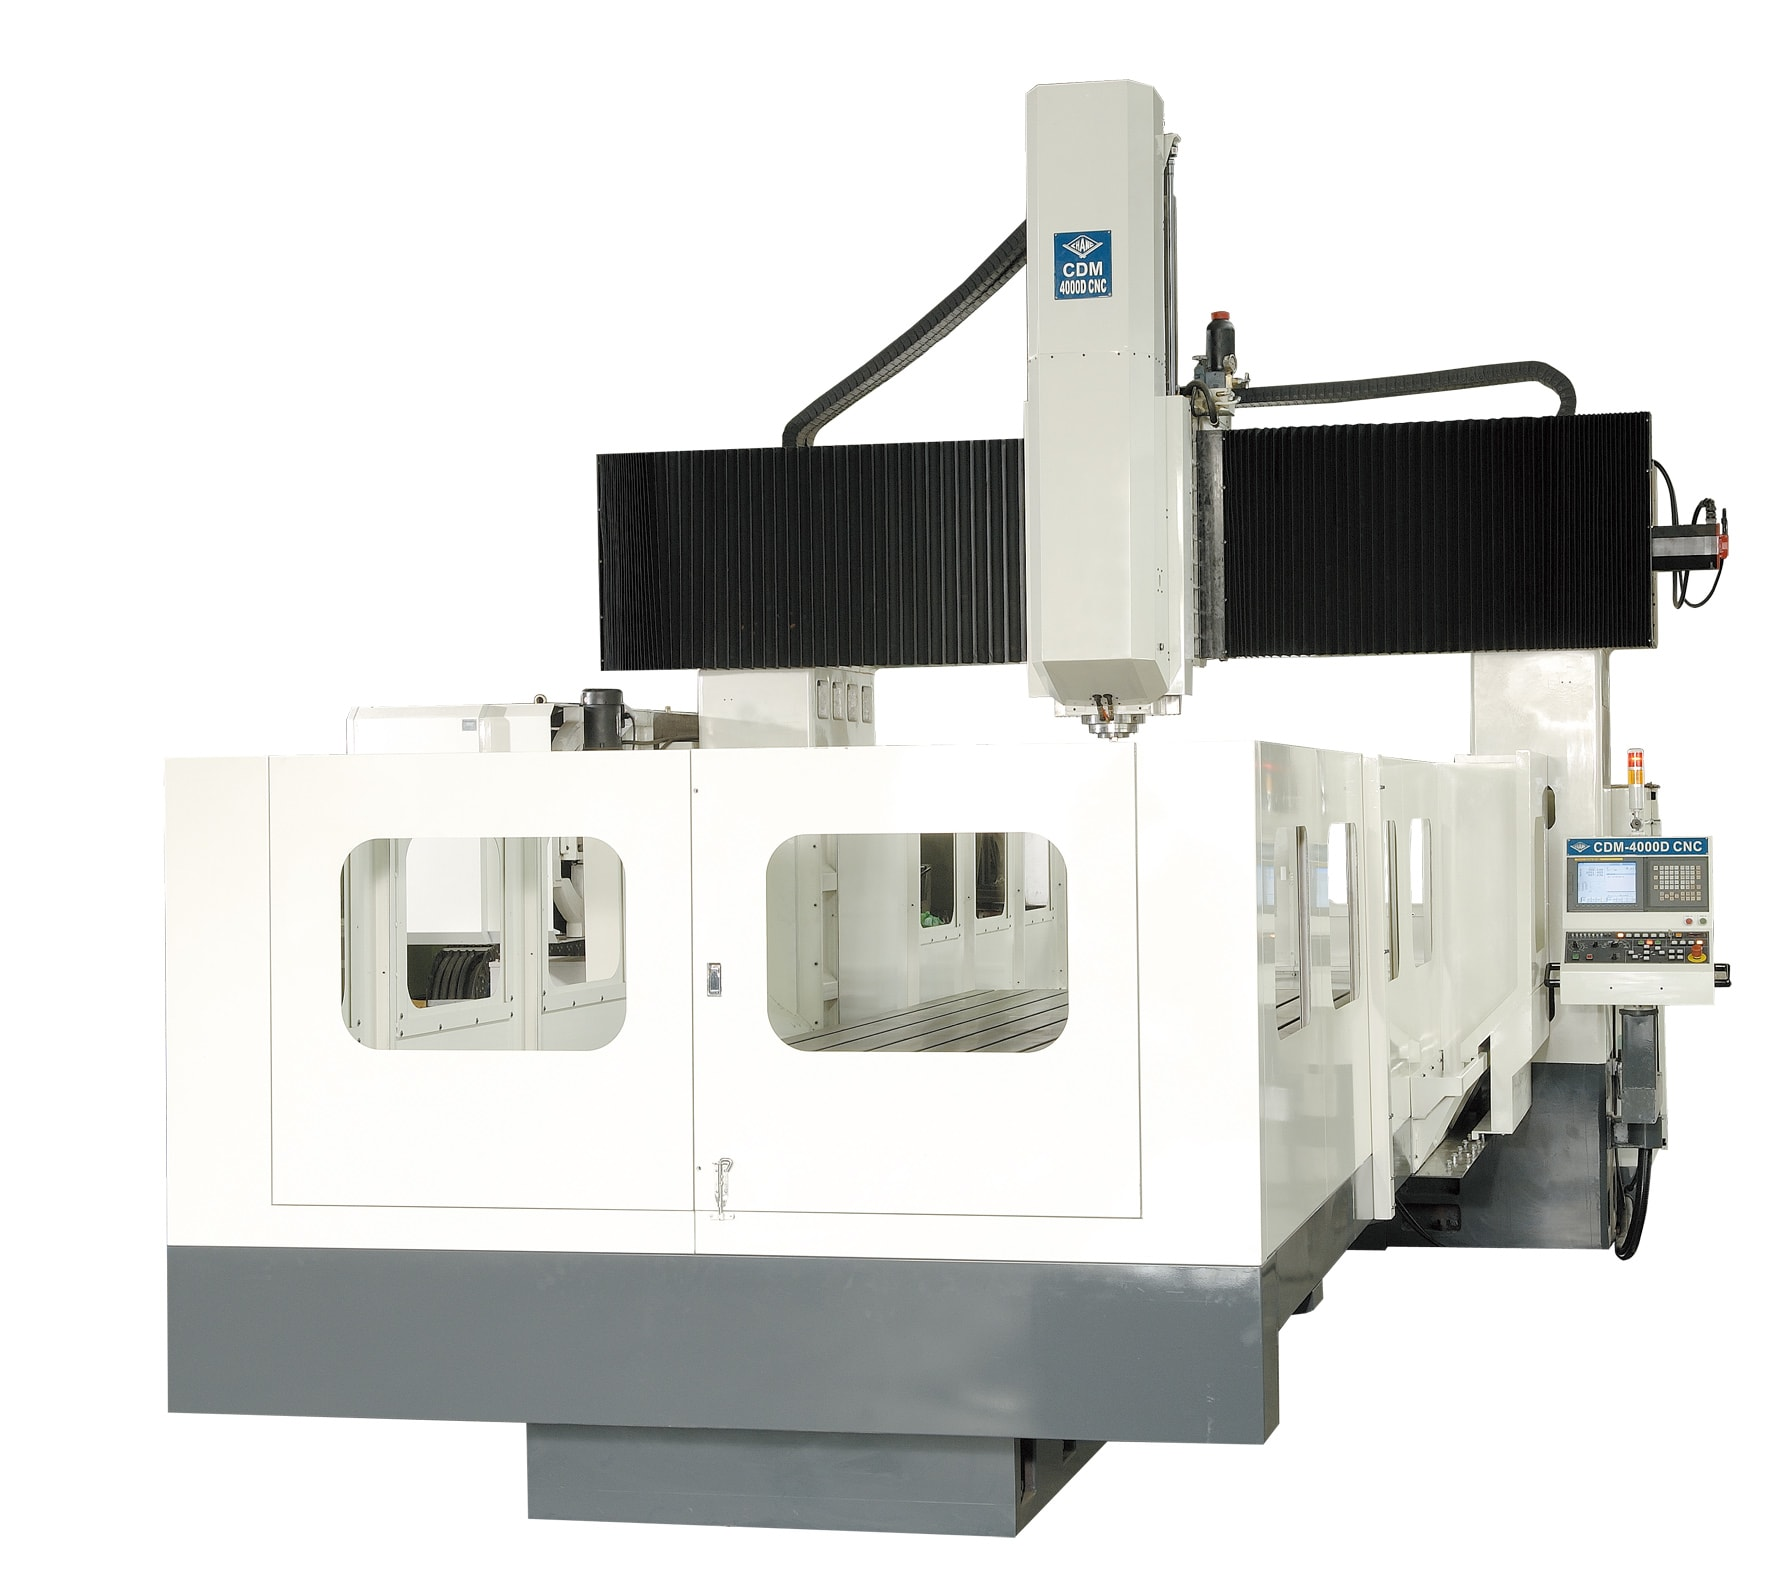 CHANG CDM Series CNC Gantry Type Machining Center